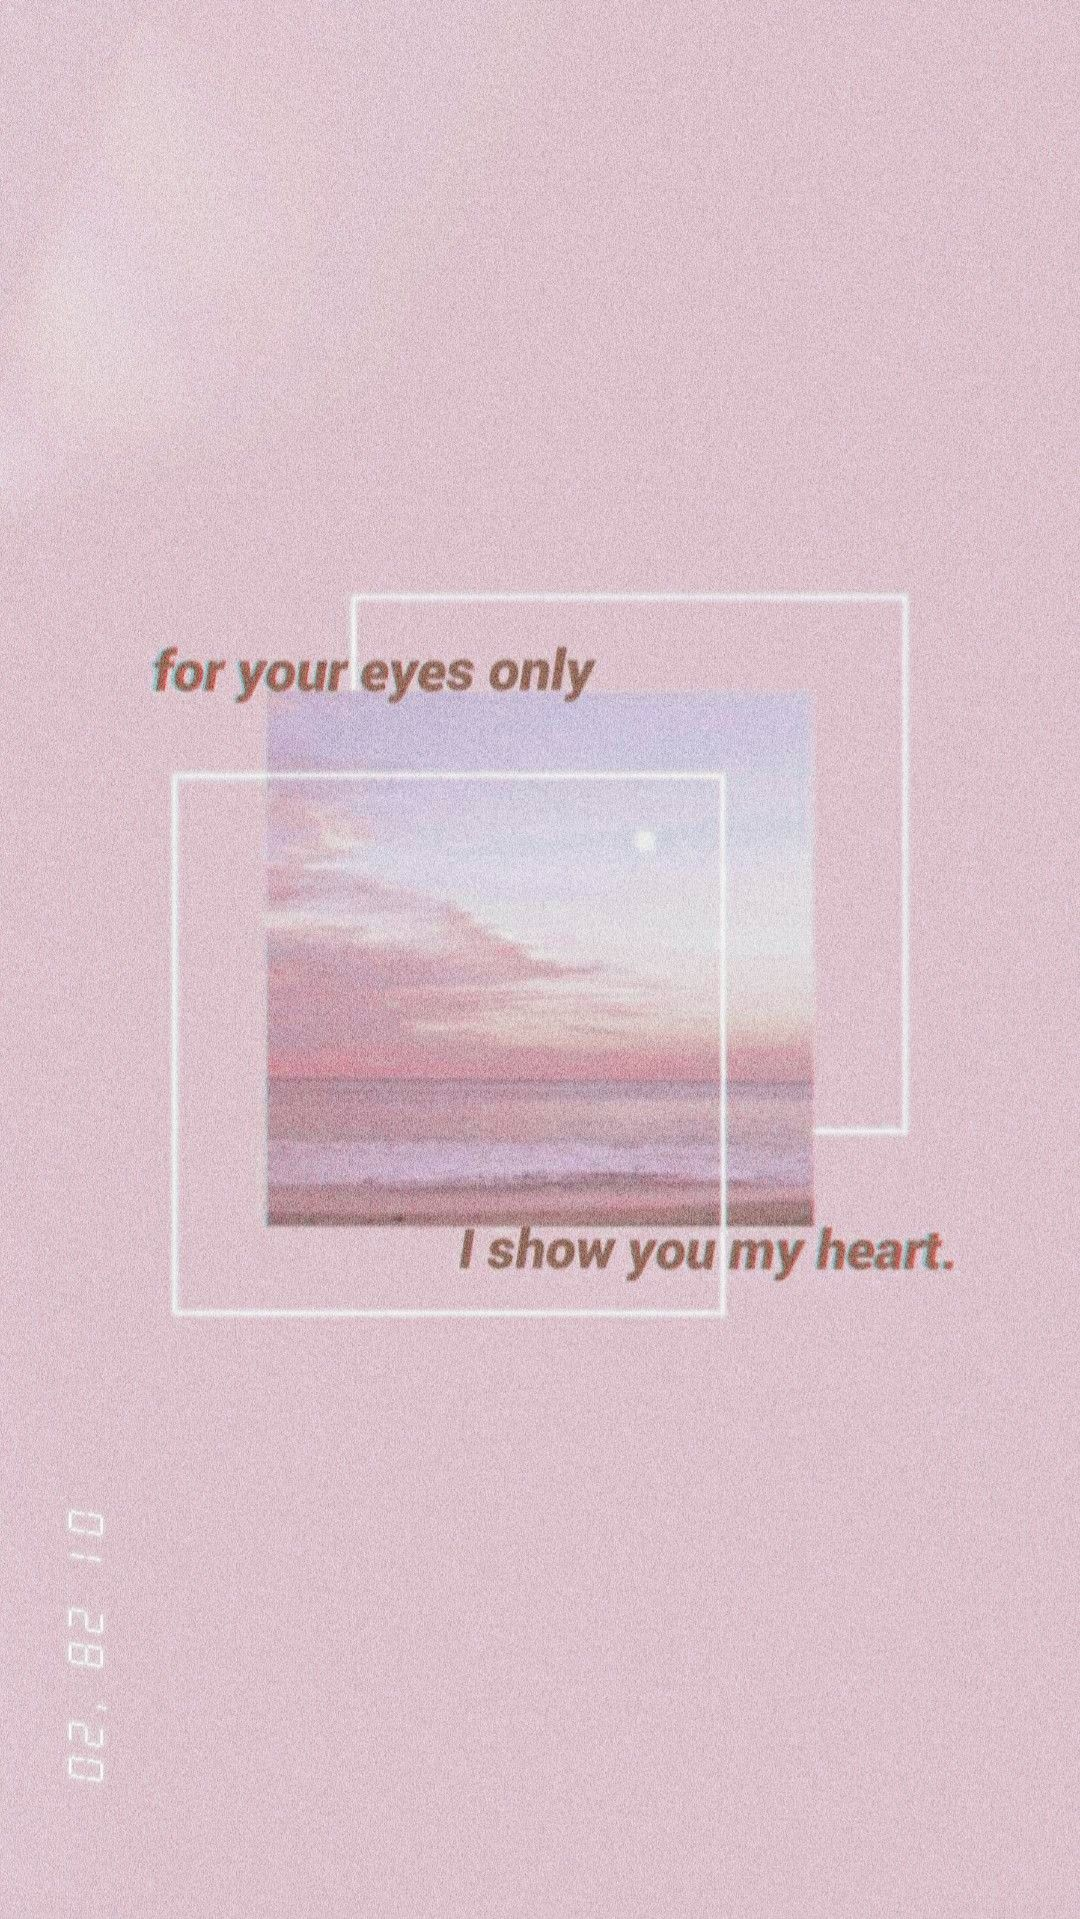 One Direction If I Could Fly Lyrics Wallpaper In 2020 Aesthetic Wallpapers Aesthetic Pastel Wallpaper Aesthetic Iphone Wallpaper